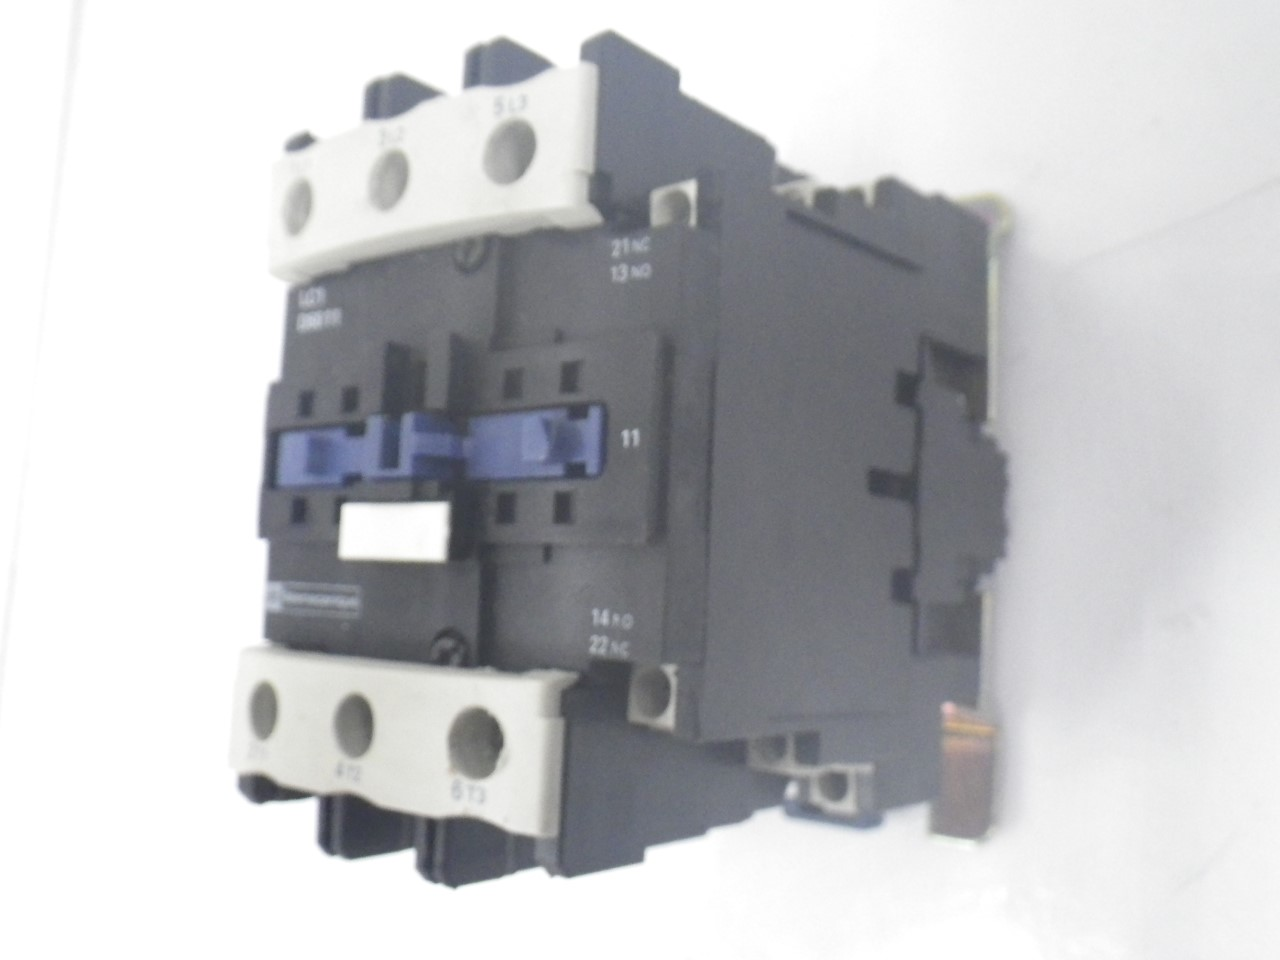 IMGP8343125A, 600V (17)LC1D8011 Telemecanique Contactor Magnetic Power Relay 125a, 600v (Used Tested)